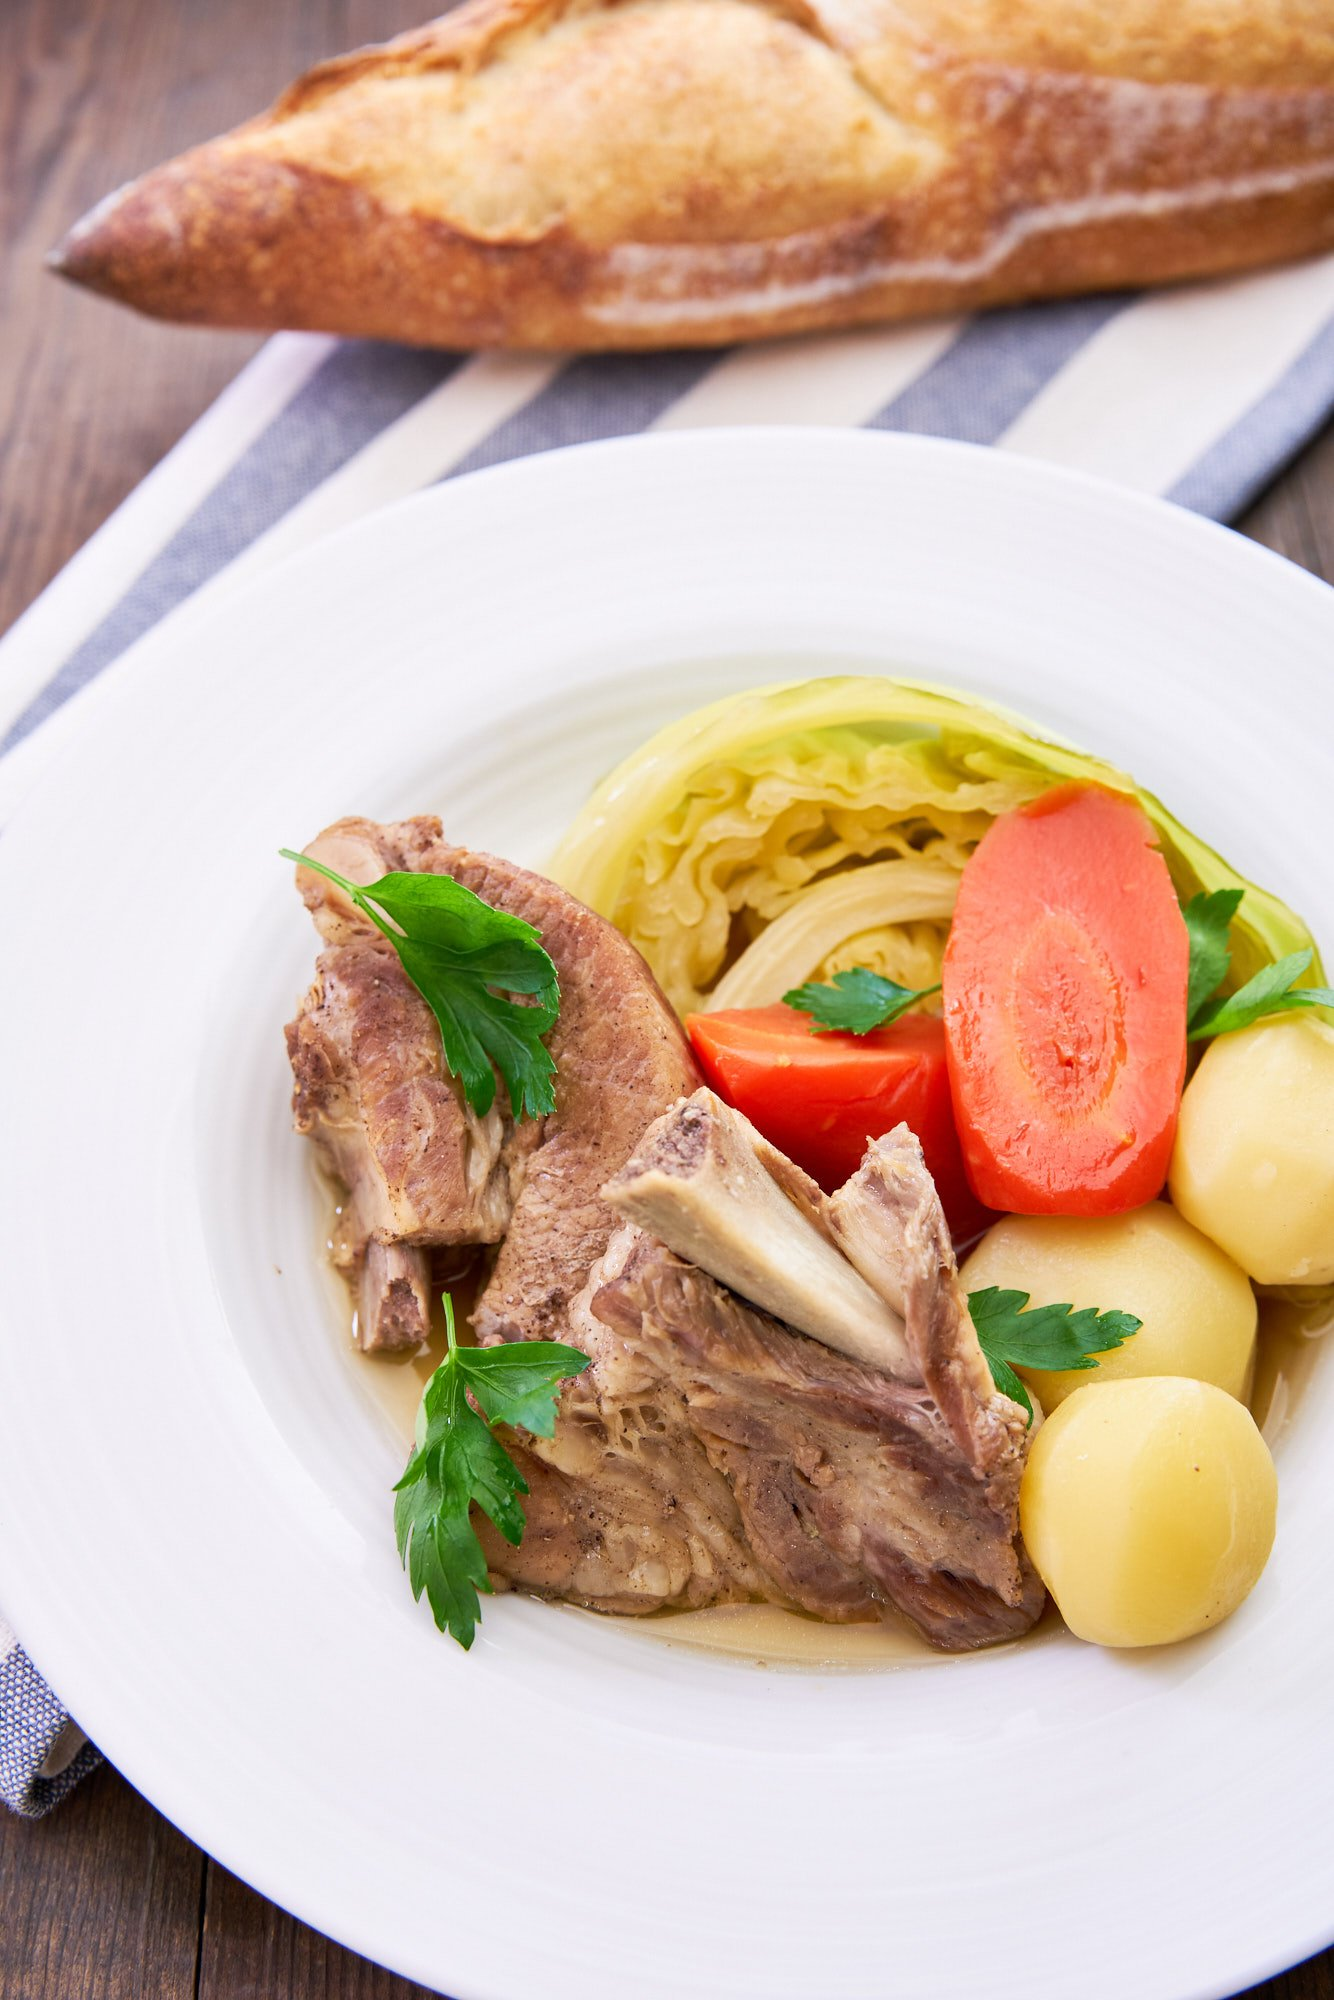 Making this Pot au Feu is as simple as simmering cured spareribs with veggies yet the ribs are flavorful and fall-apart tender thanks to a few easy tricks.